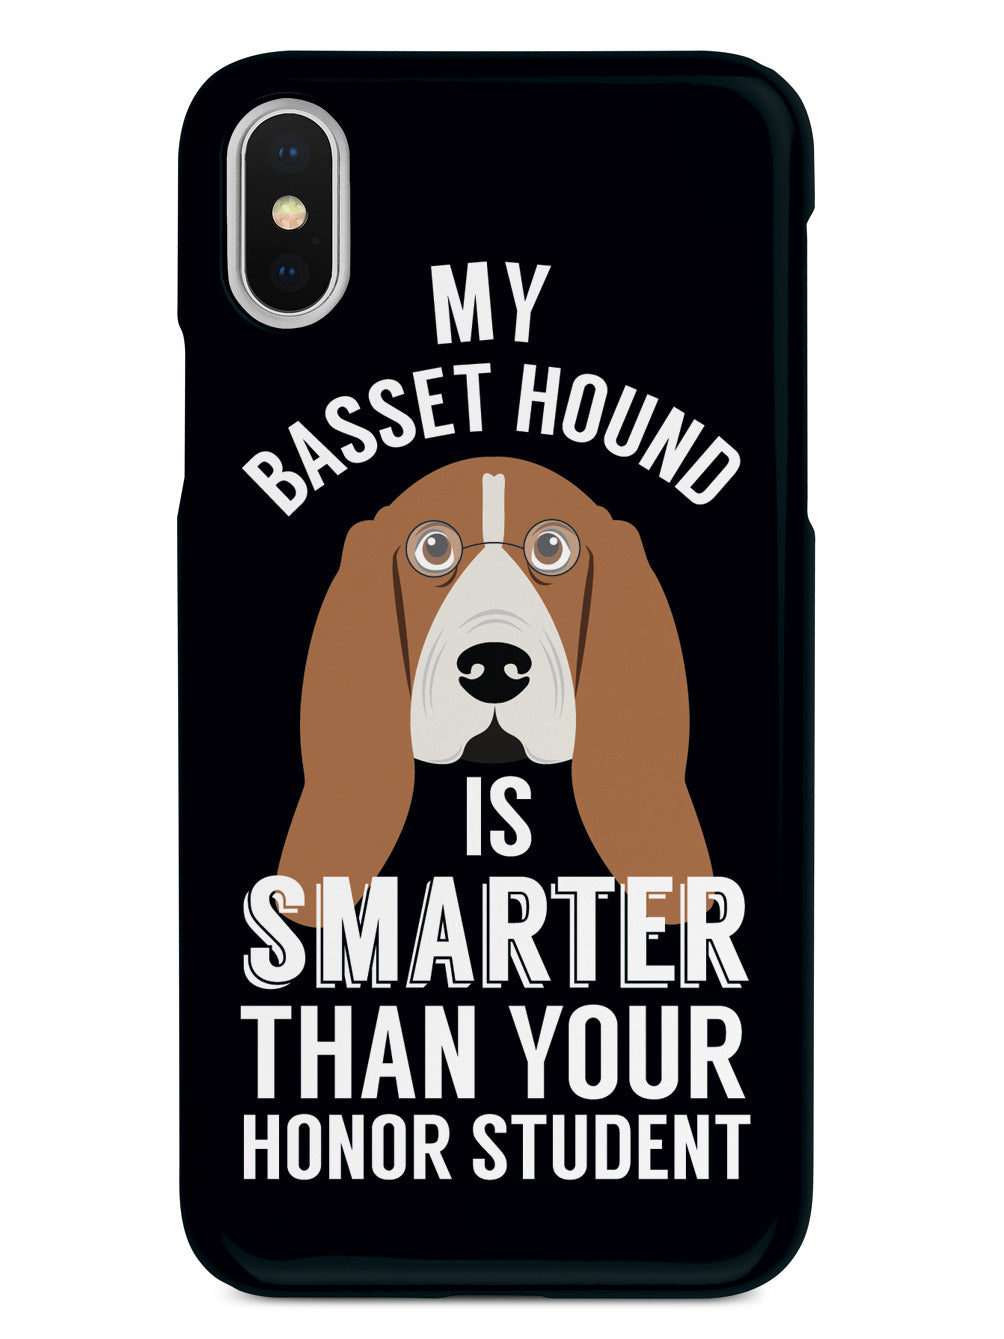 Smarter Than Your Honor Student - Basset Hound Case